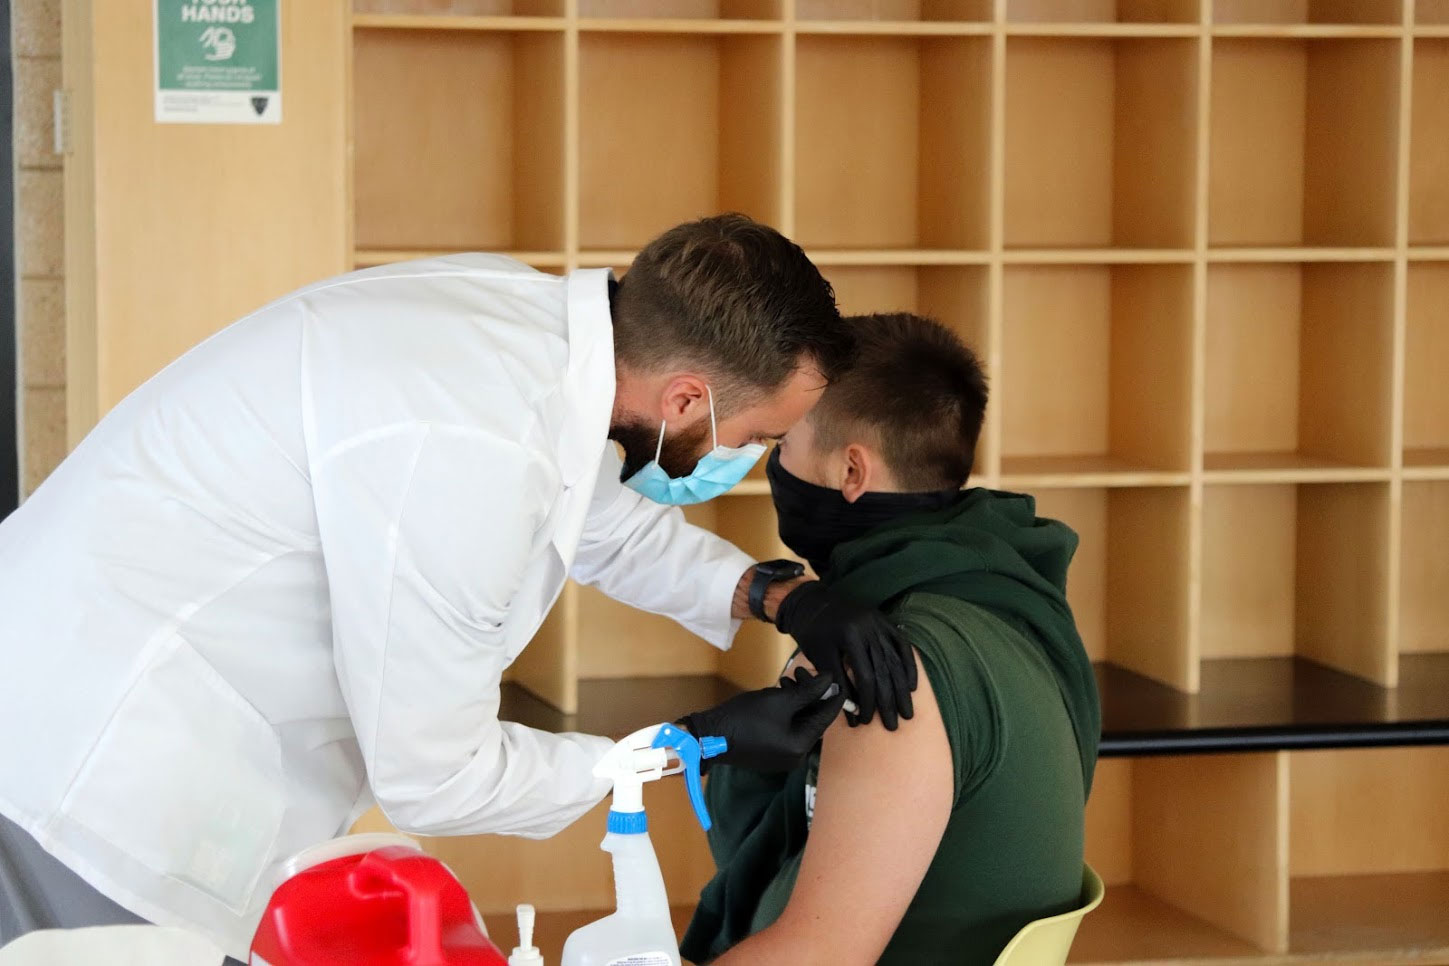 A male student receives a flu shot in the arm from a doctor in white coat.